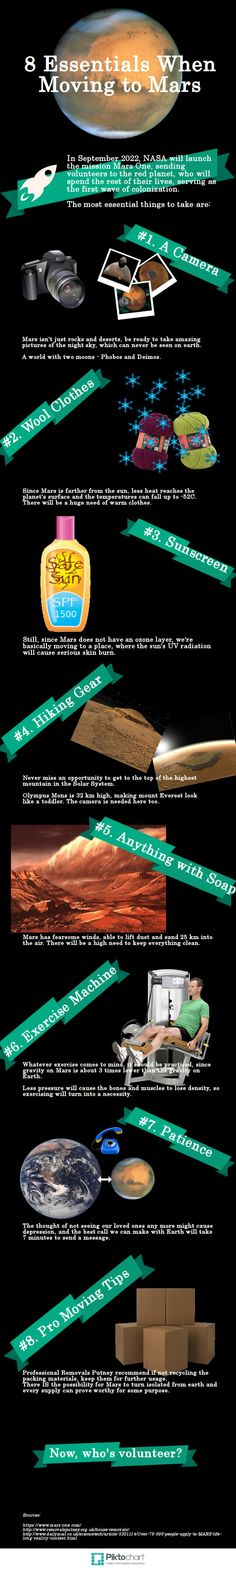 8 Essentials When Moving to Mars   #infographic  #Mars #Space